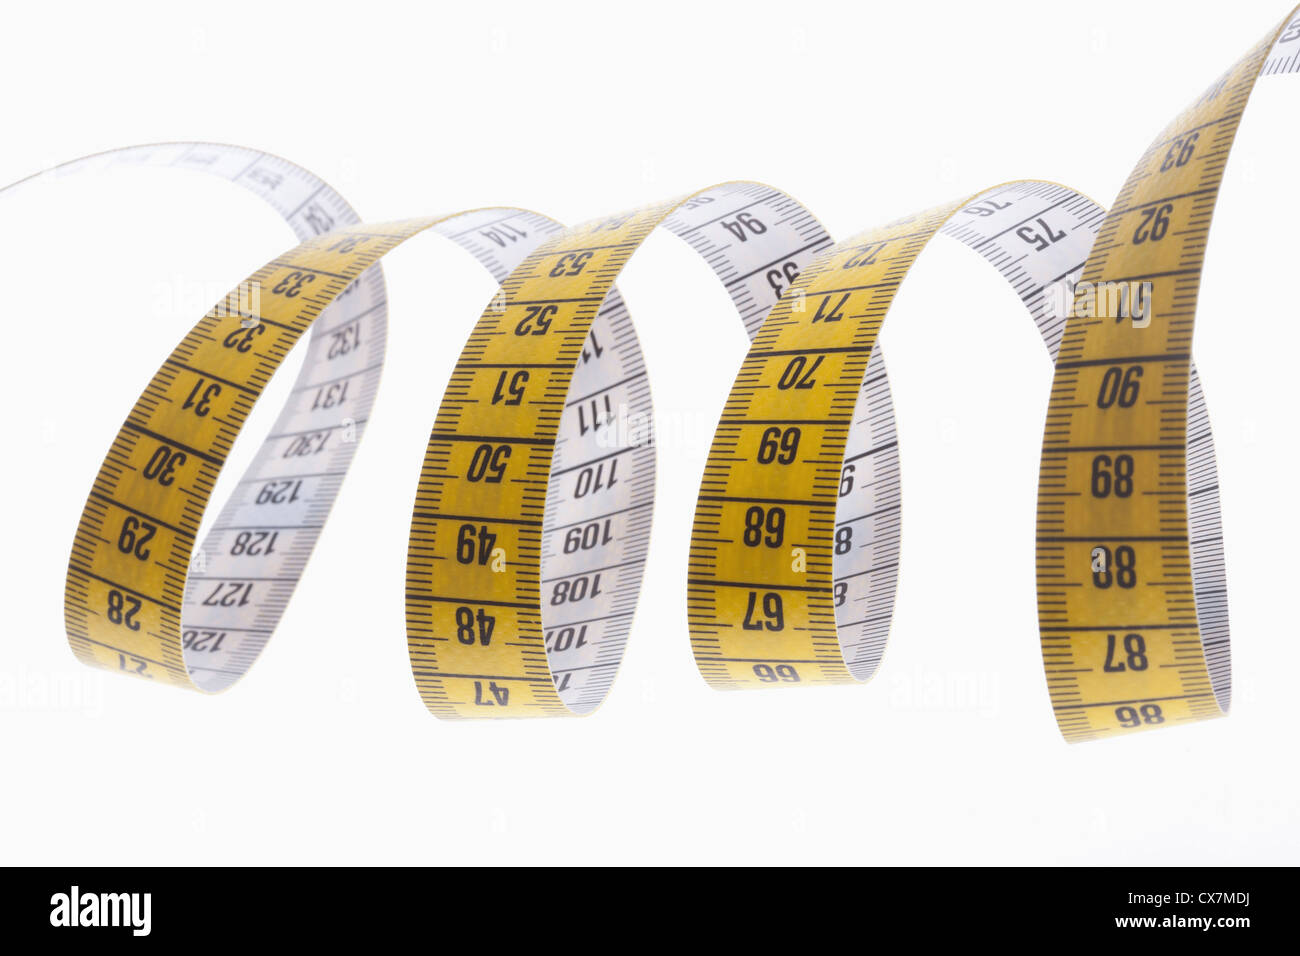 A centimeter tape measure arranged in a spiral shape - Stock Image